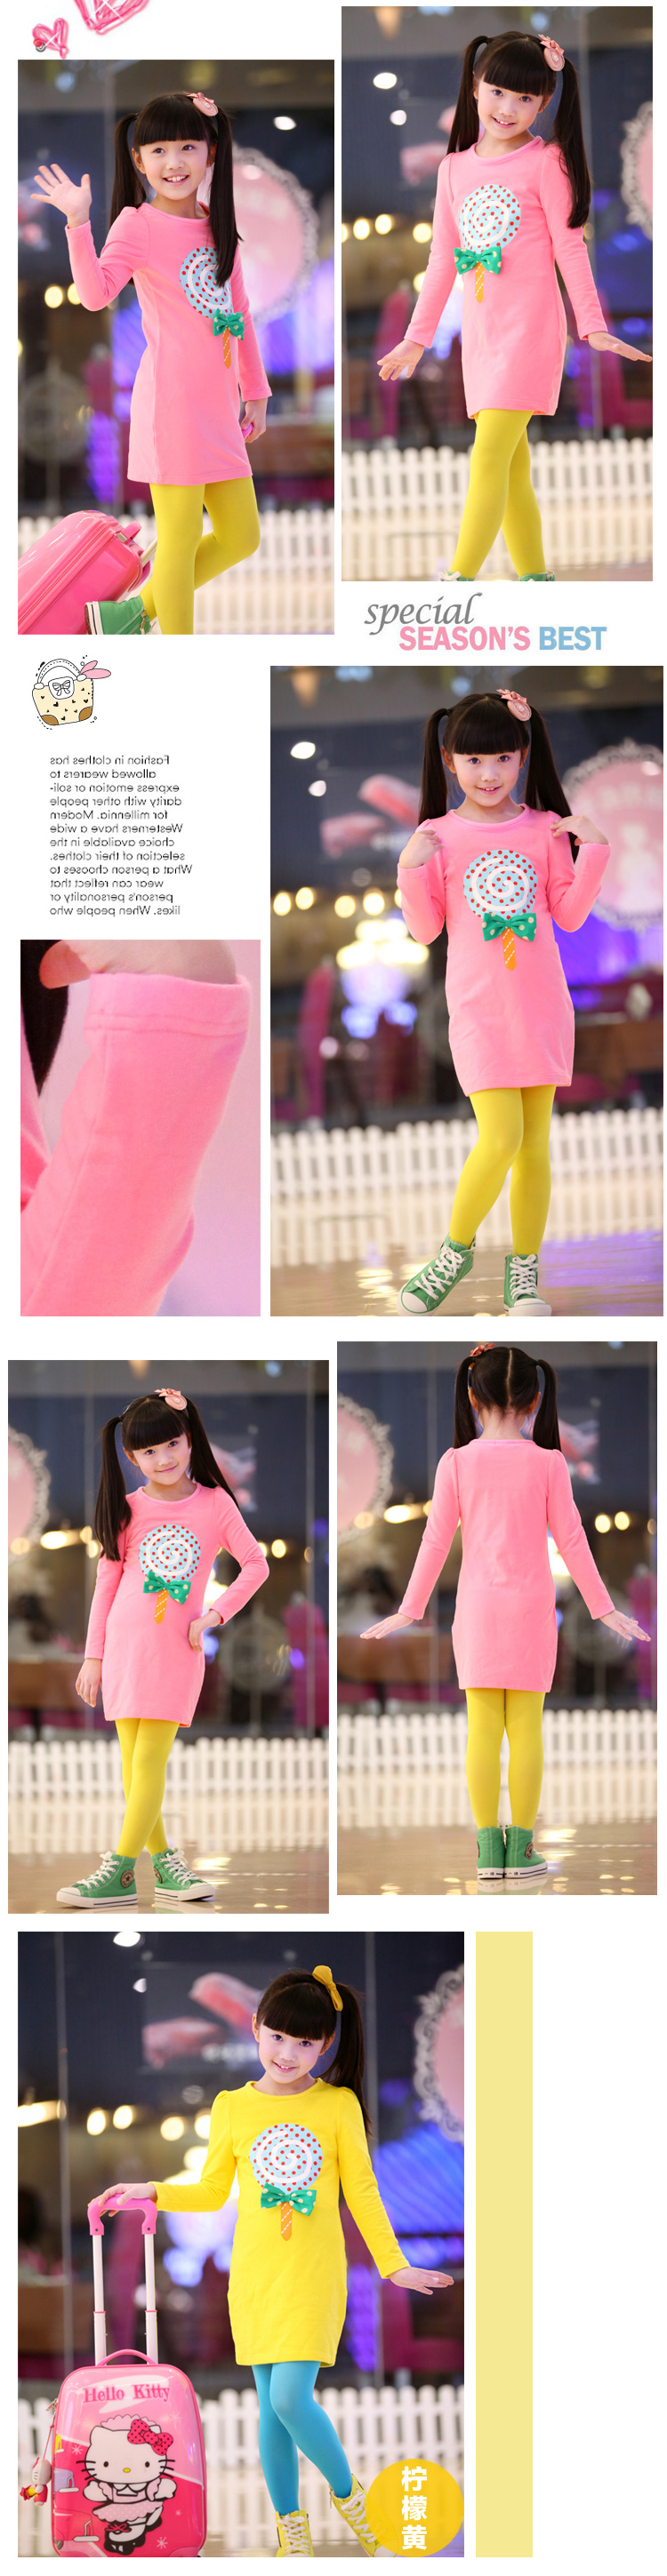 Flute Shakespeare kids girls 2013 spring new children's clothes sweater Candy-colored slim girls sweater 1